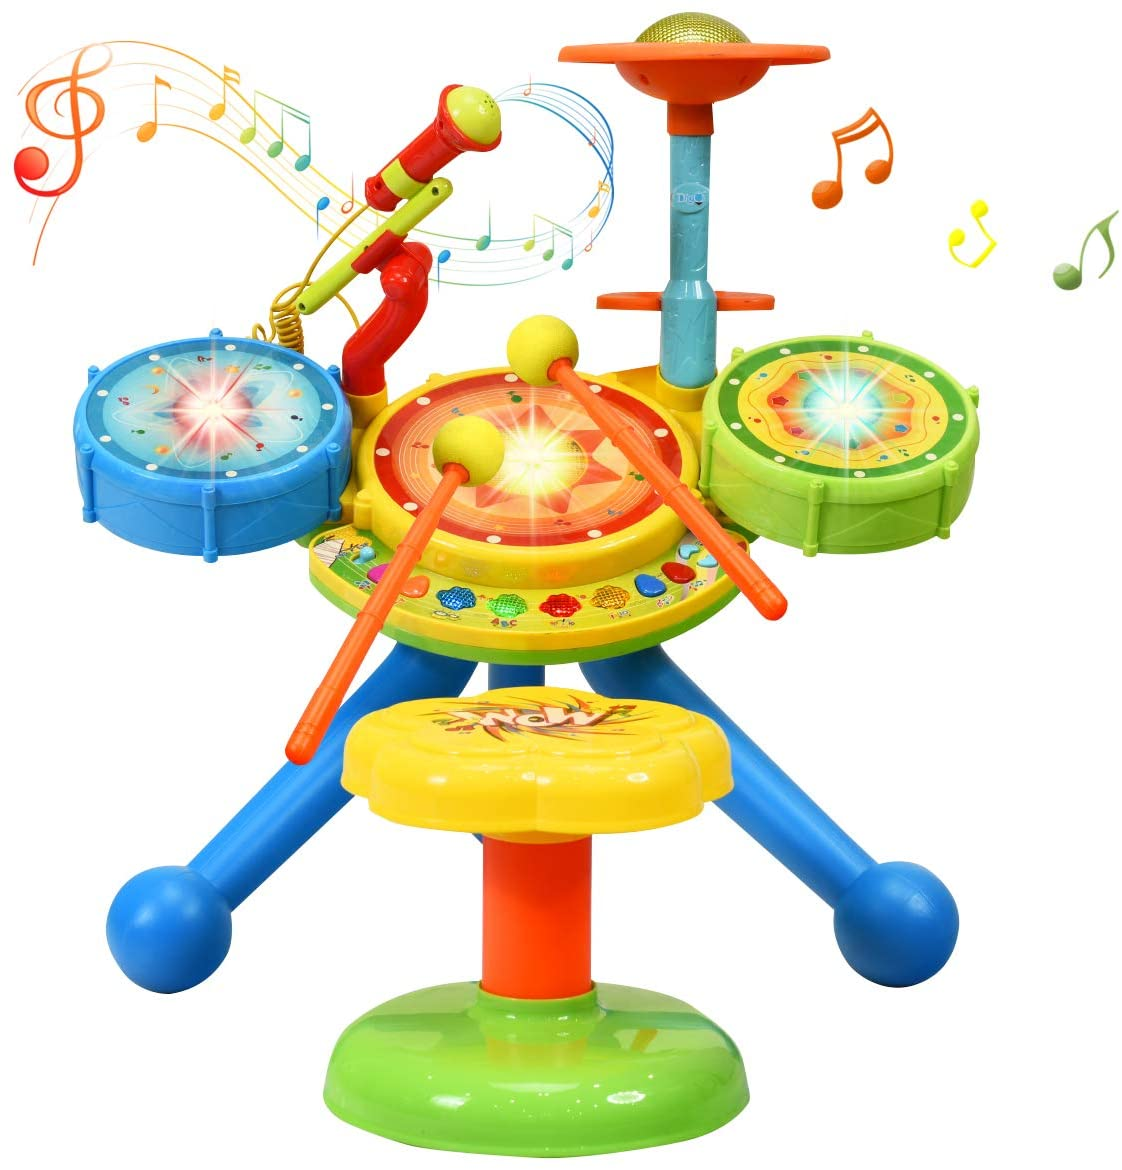 Costzon 2-in-1 Kids Electronic Musical Toy Drum Set, with Microphone and Chair, Spanish & English Bilingual Electronic Jazz Drum Set, Suitable for Kids, Babies (Multicolor)